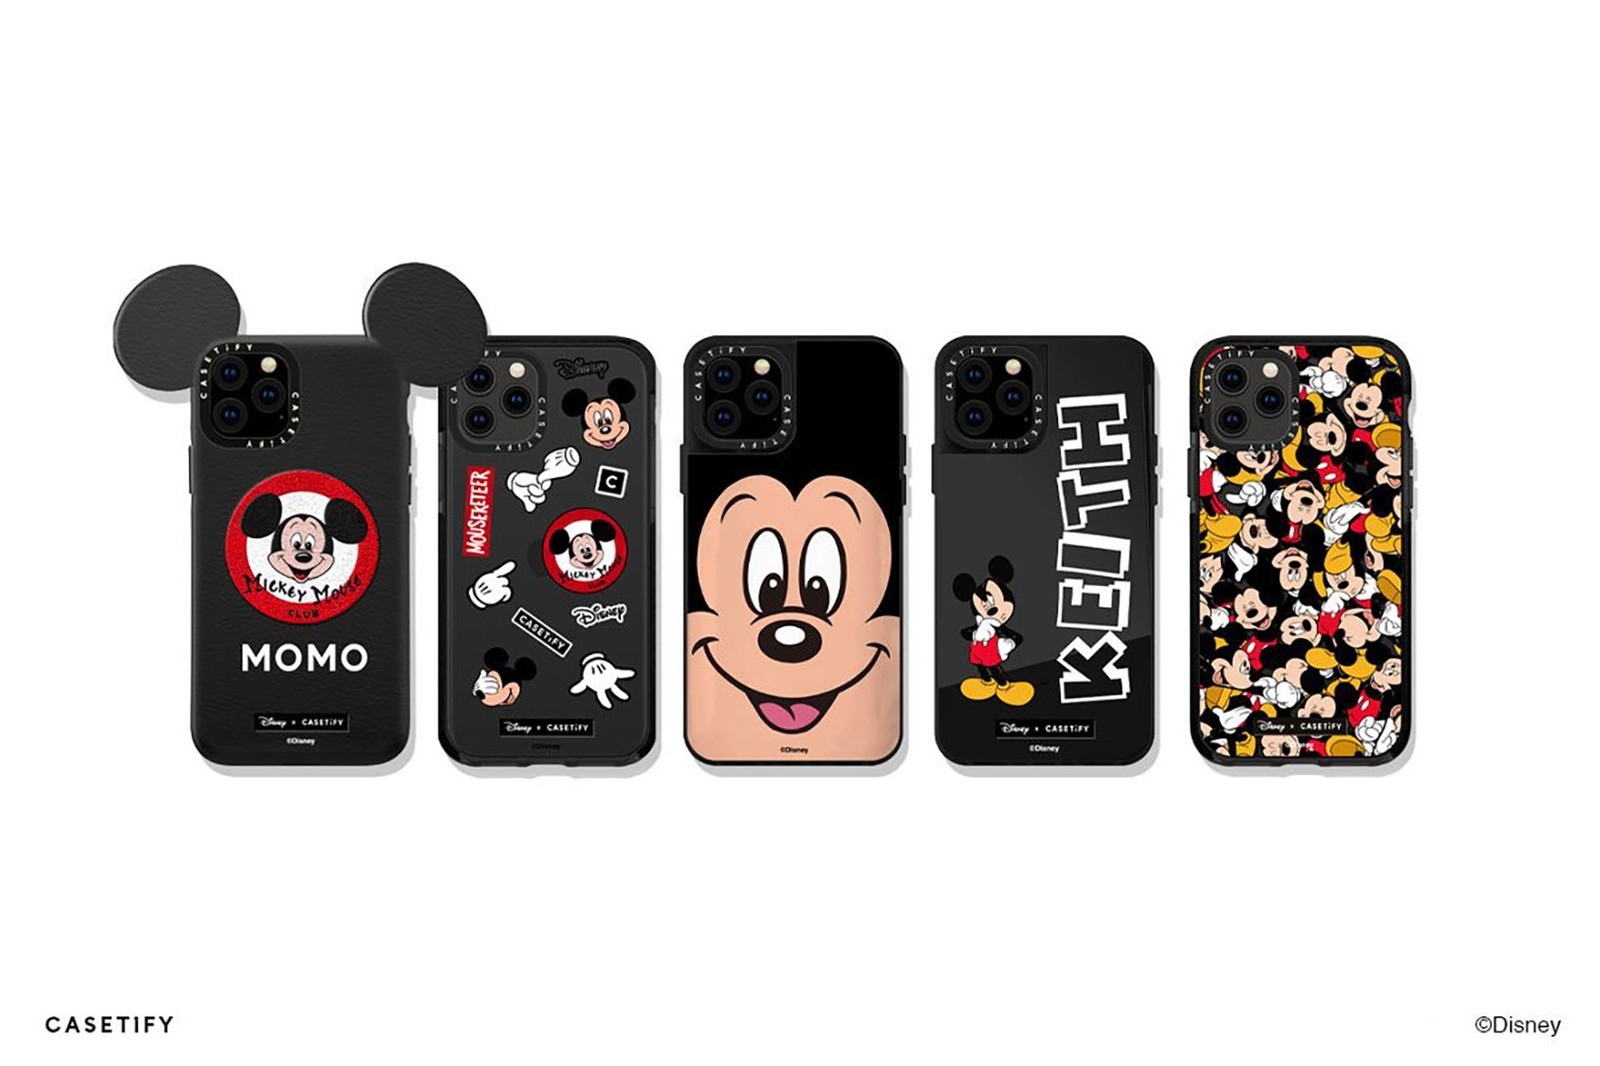 disney casetify collaboration phone cases apple iphone accessories mickey mouse